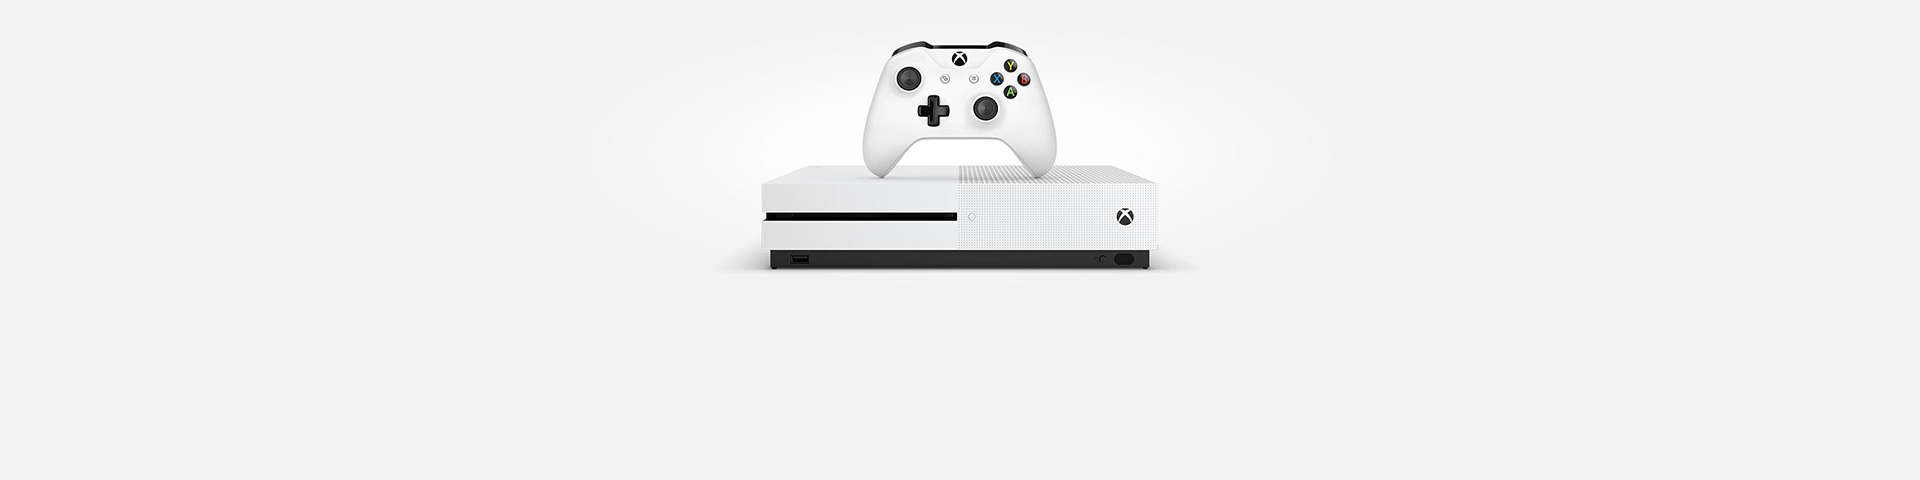 Xbox One S console and controller, buy now